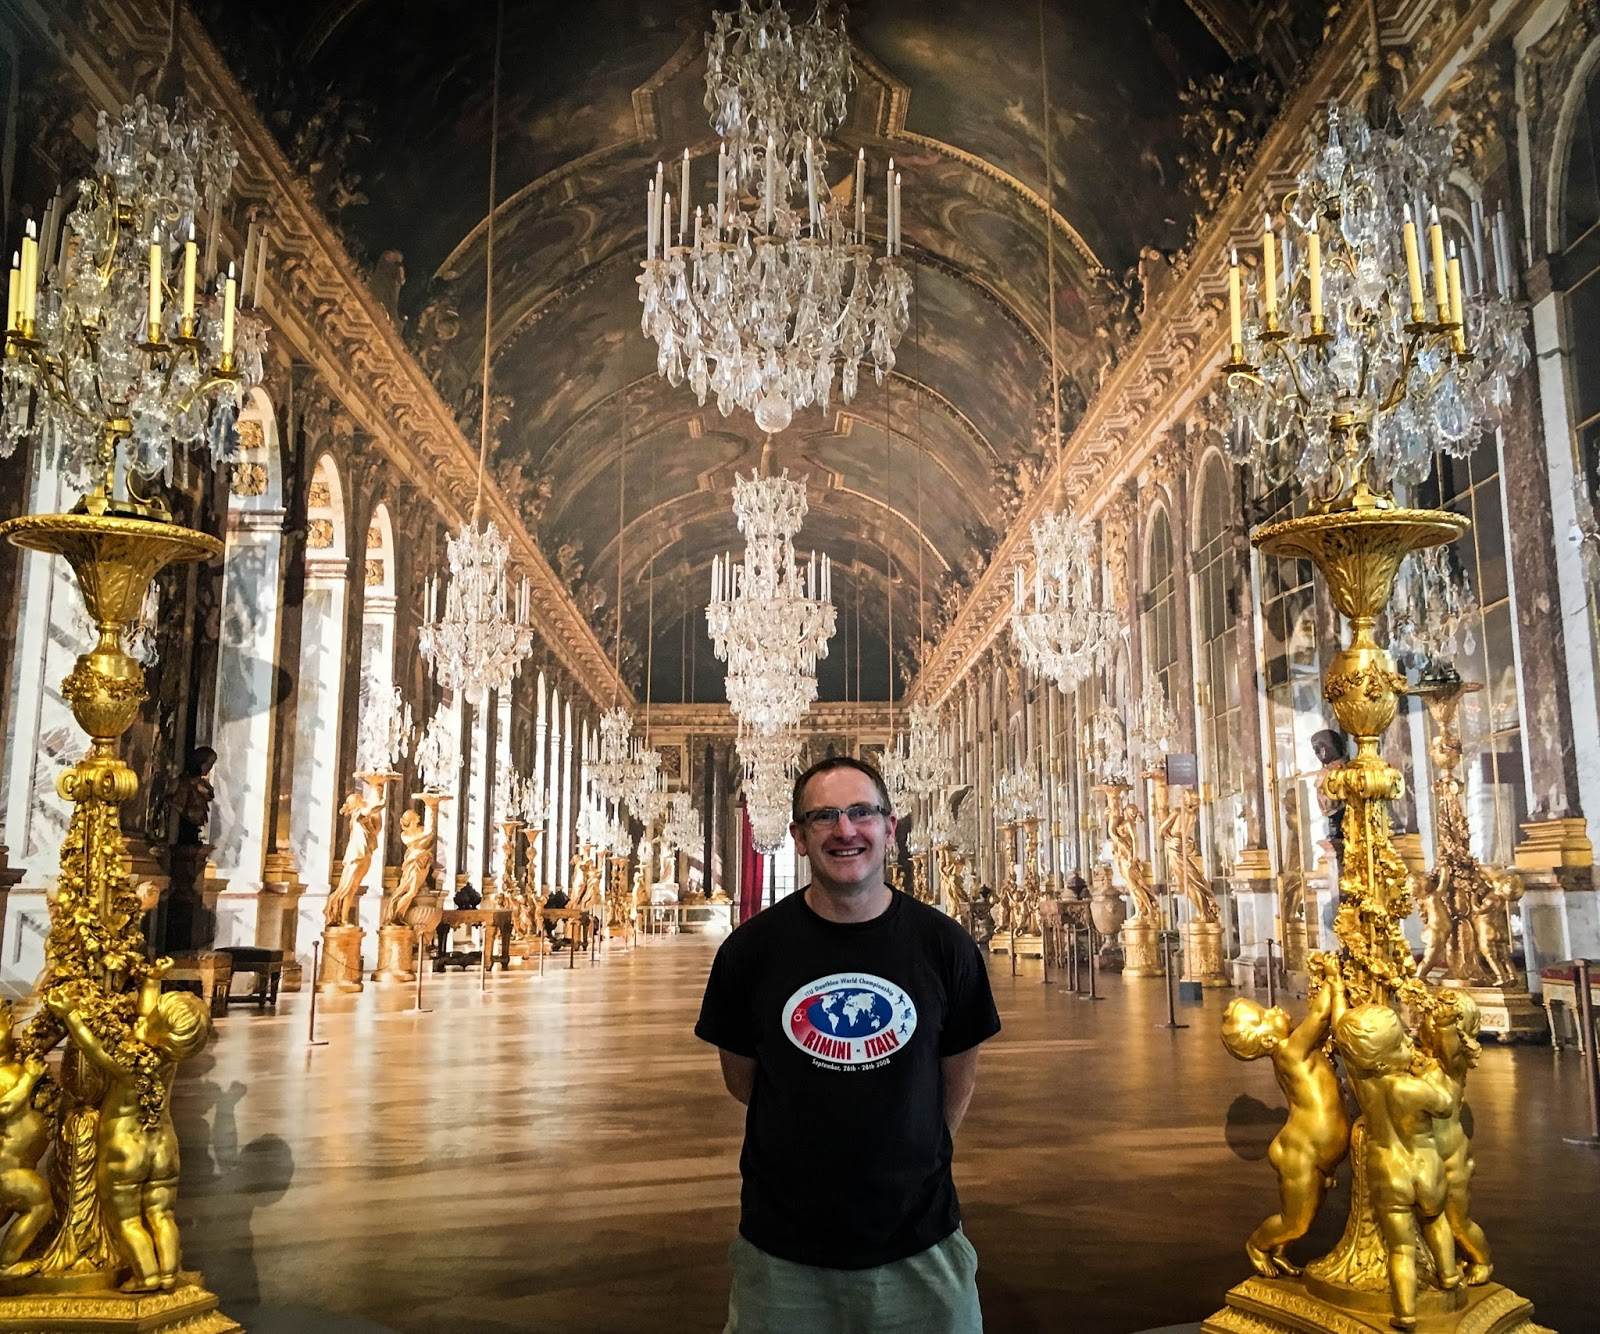 Those Who Have Never Been There Could Get A Feel For The Place By Standing Against Backdrop Of Hall Mirrors